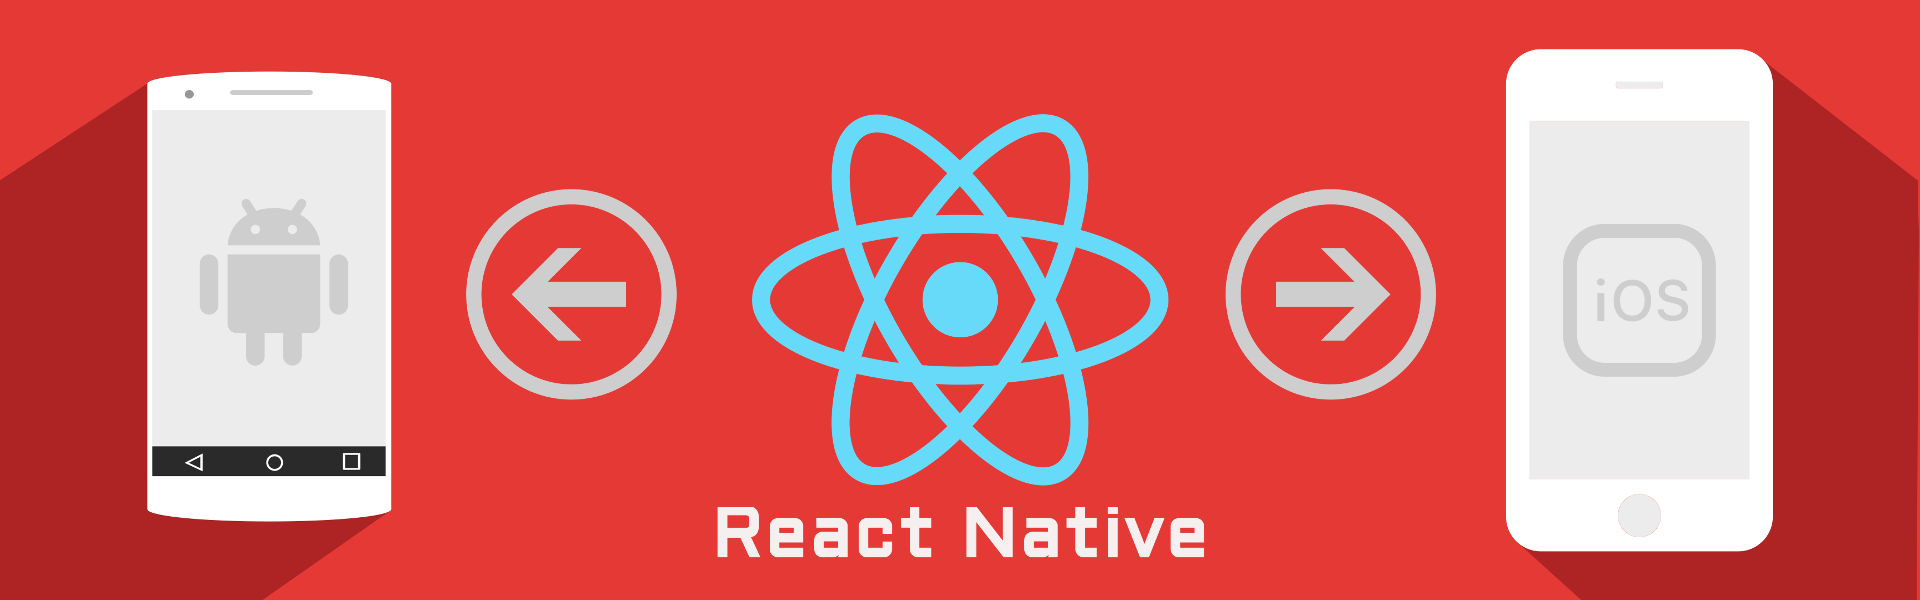 Cross Platform React Native Apps